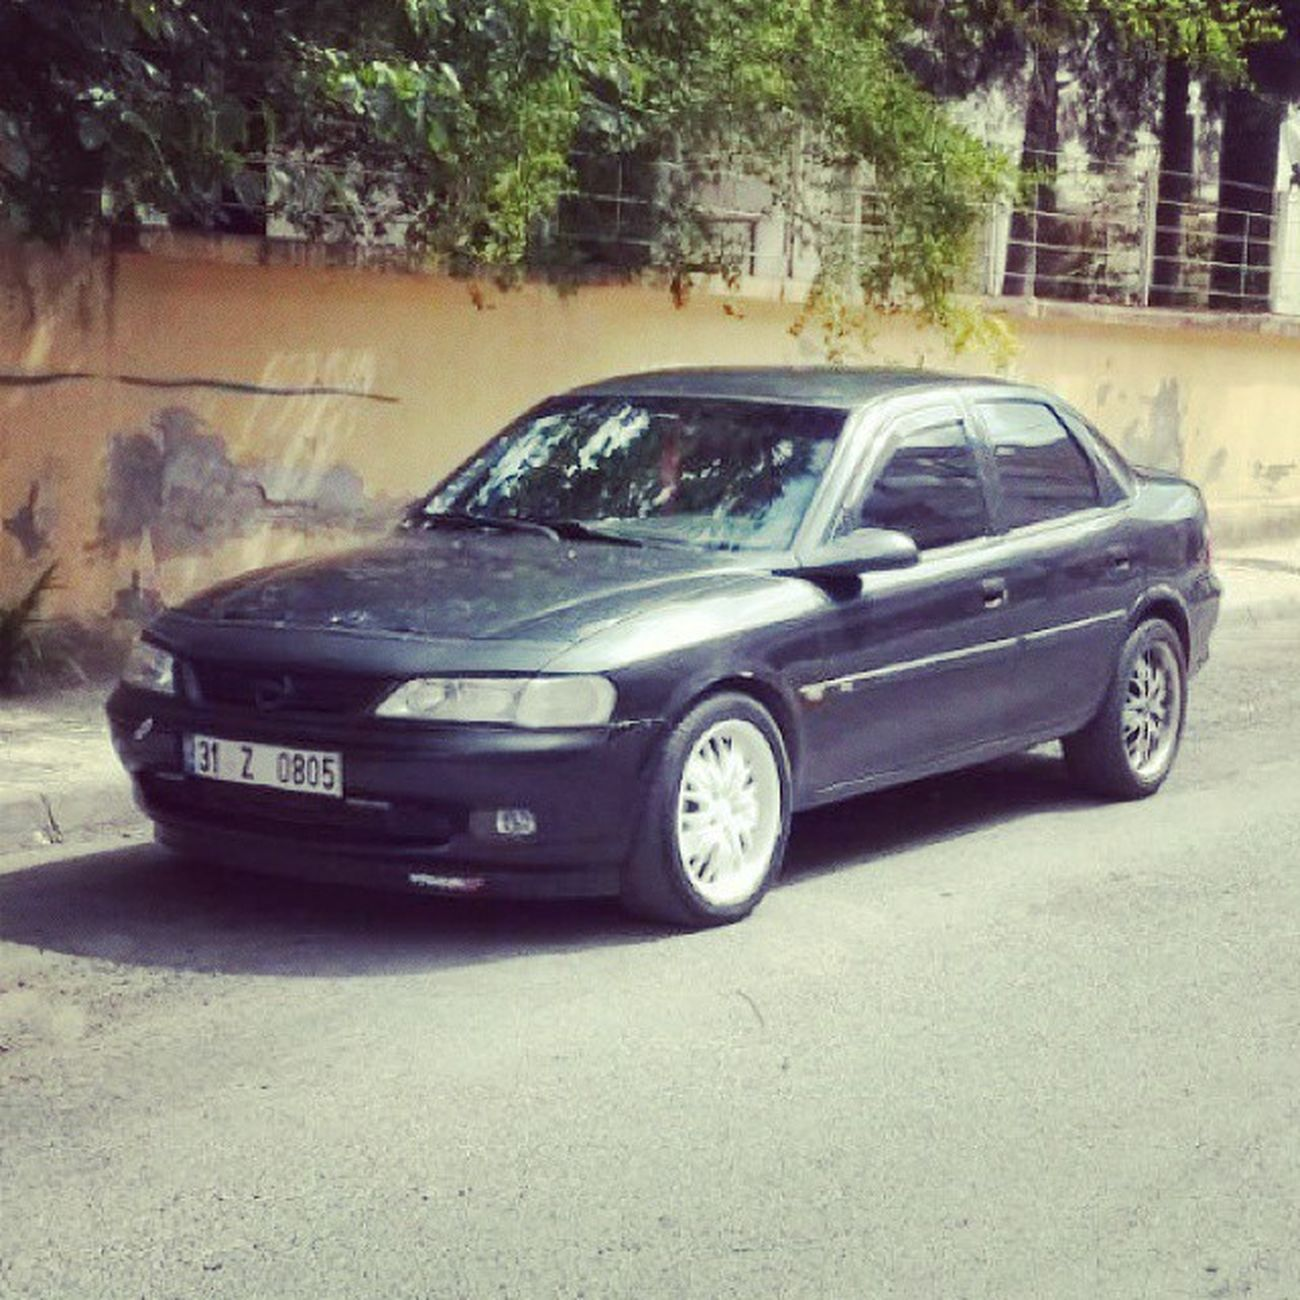 Lovevectra Love Vectra Vauxhall becauseracecar opel